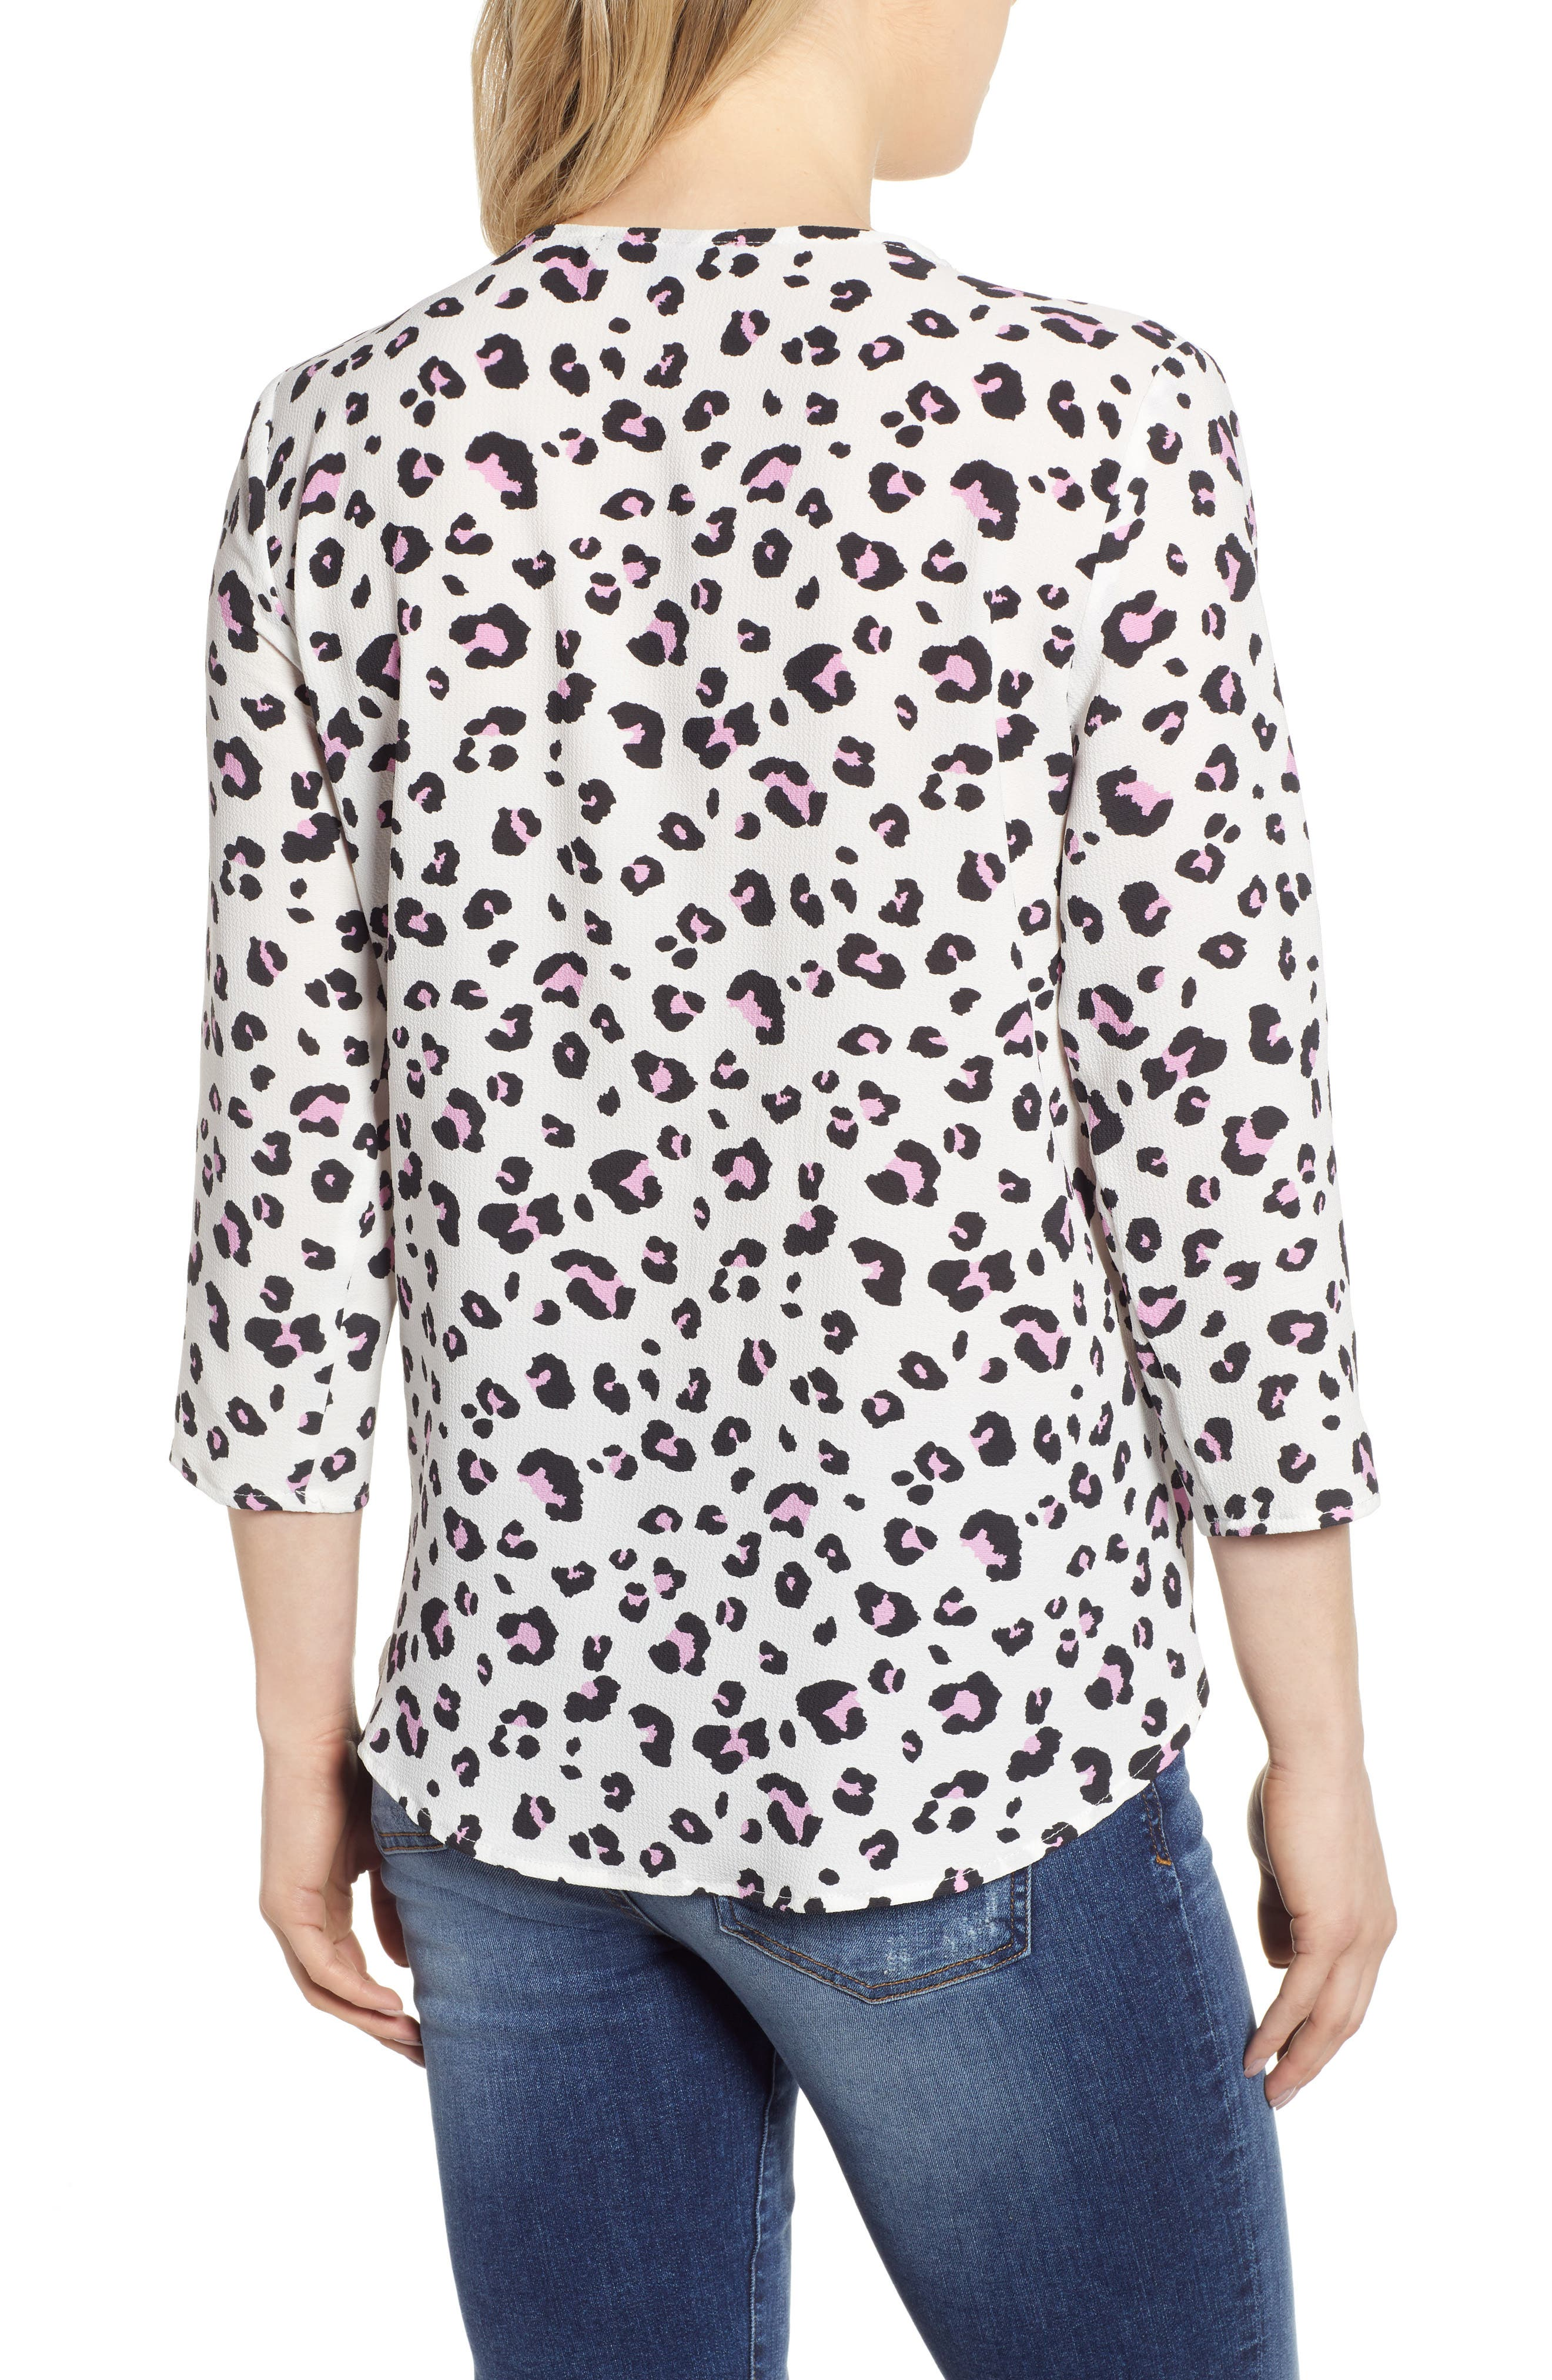 GIBSON,                             x International Women's Day Rebecca Scalloped Wrap Top,                             Alternate thumbnail 2, color,                             IVORY/ BLACK LEOPARD